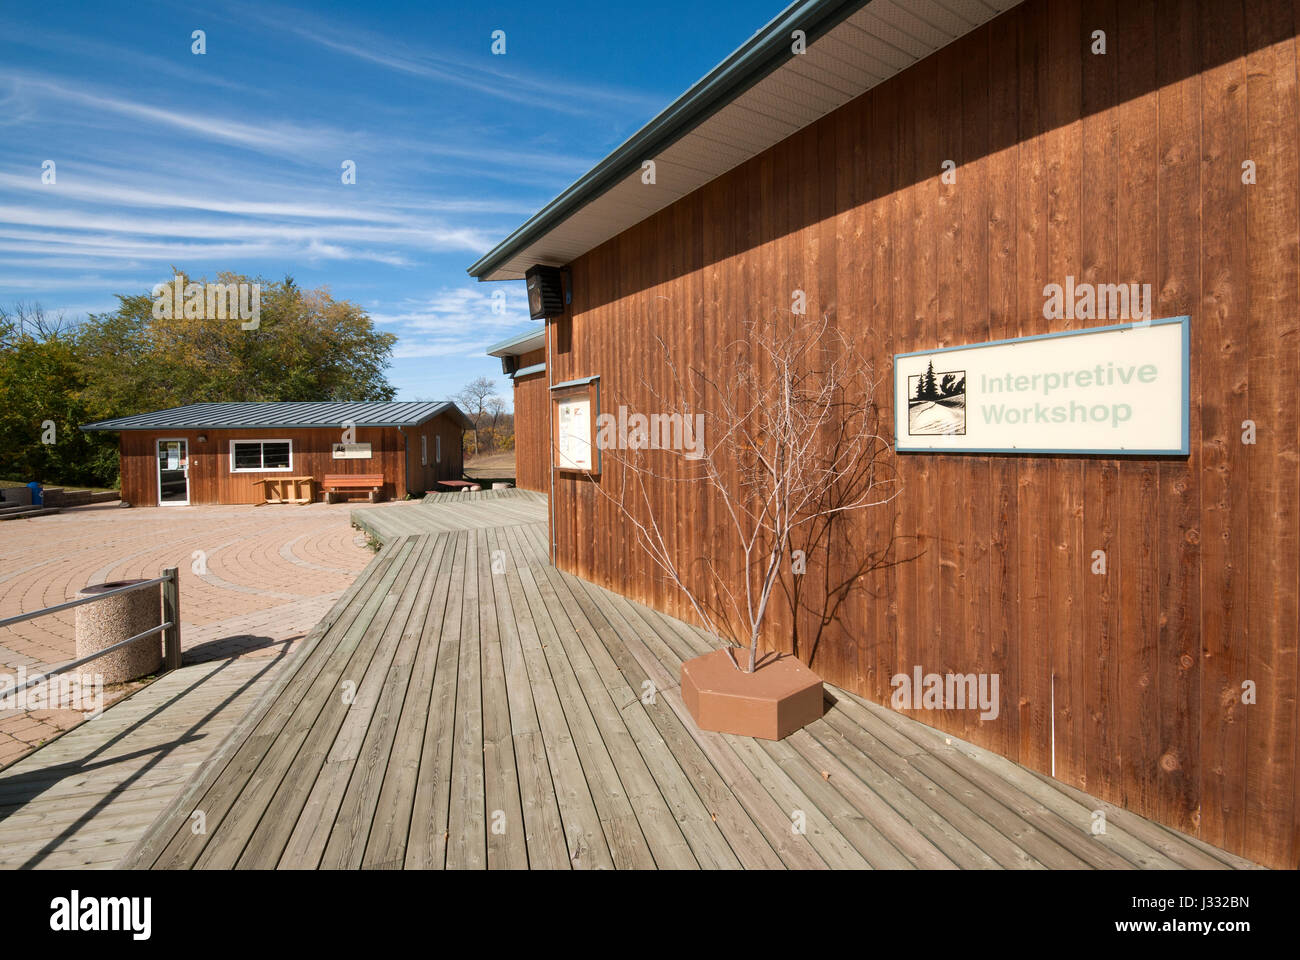 Visitor centre and bookshop at Spruce Woods Provincial Park, Manitoba, Canada - Stock Image